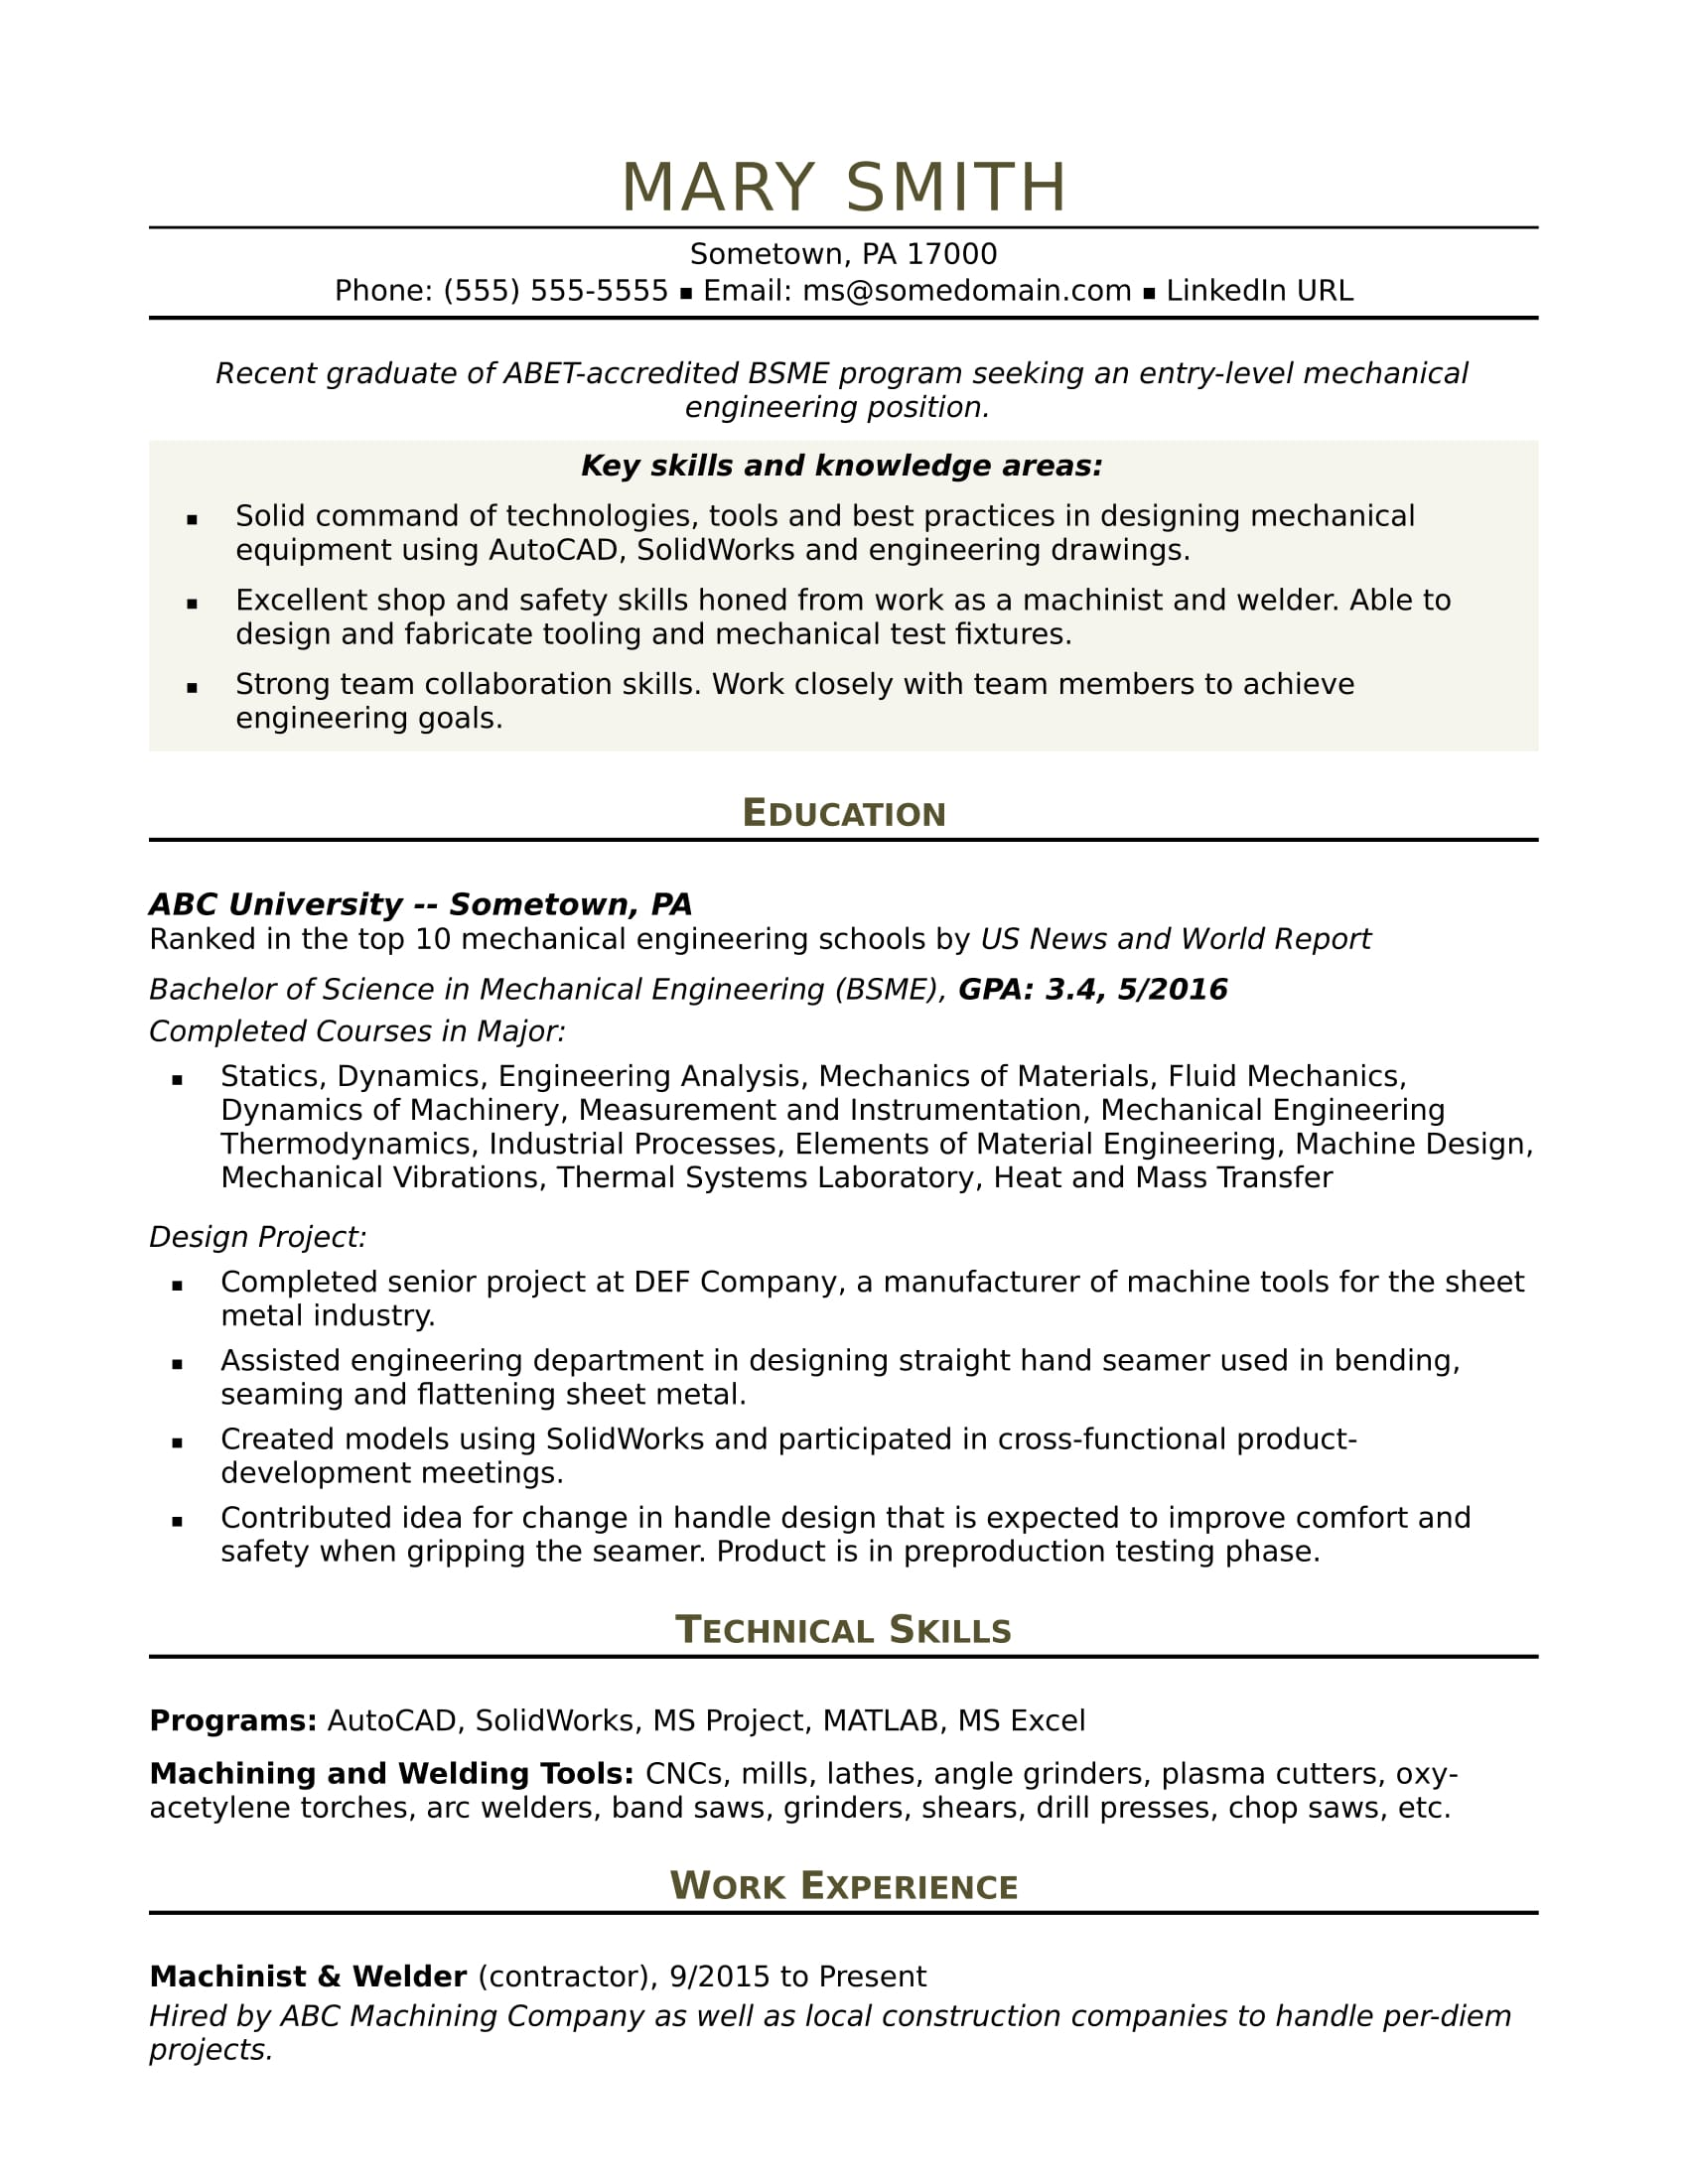 summary of qualifications for entry level